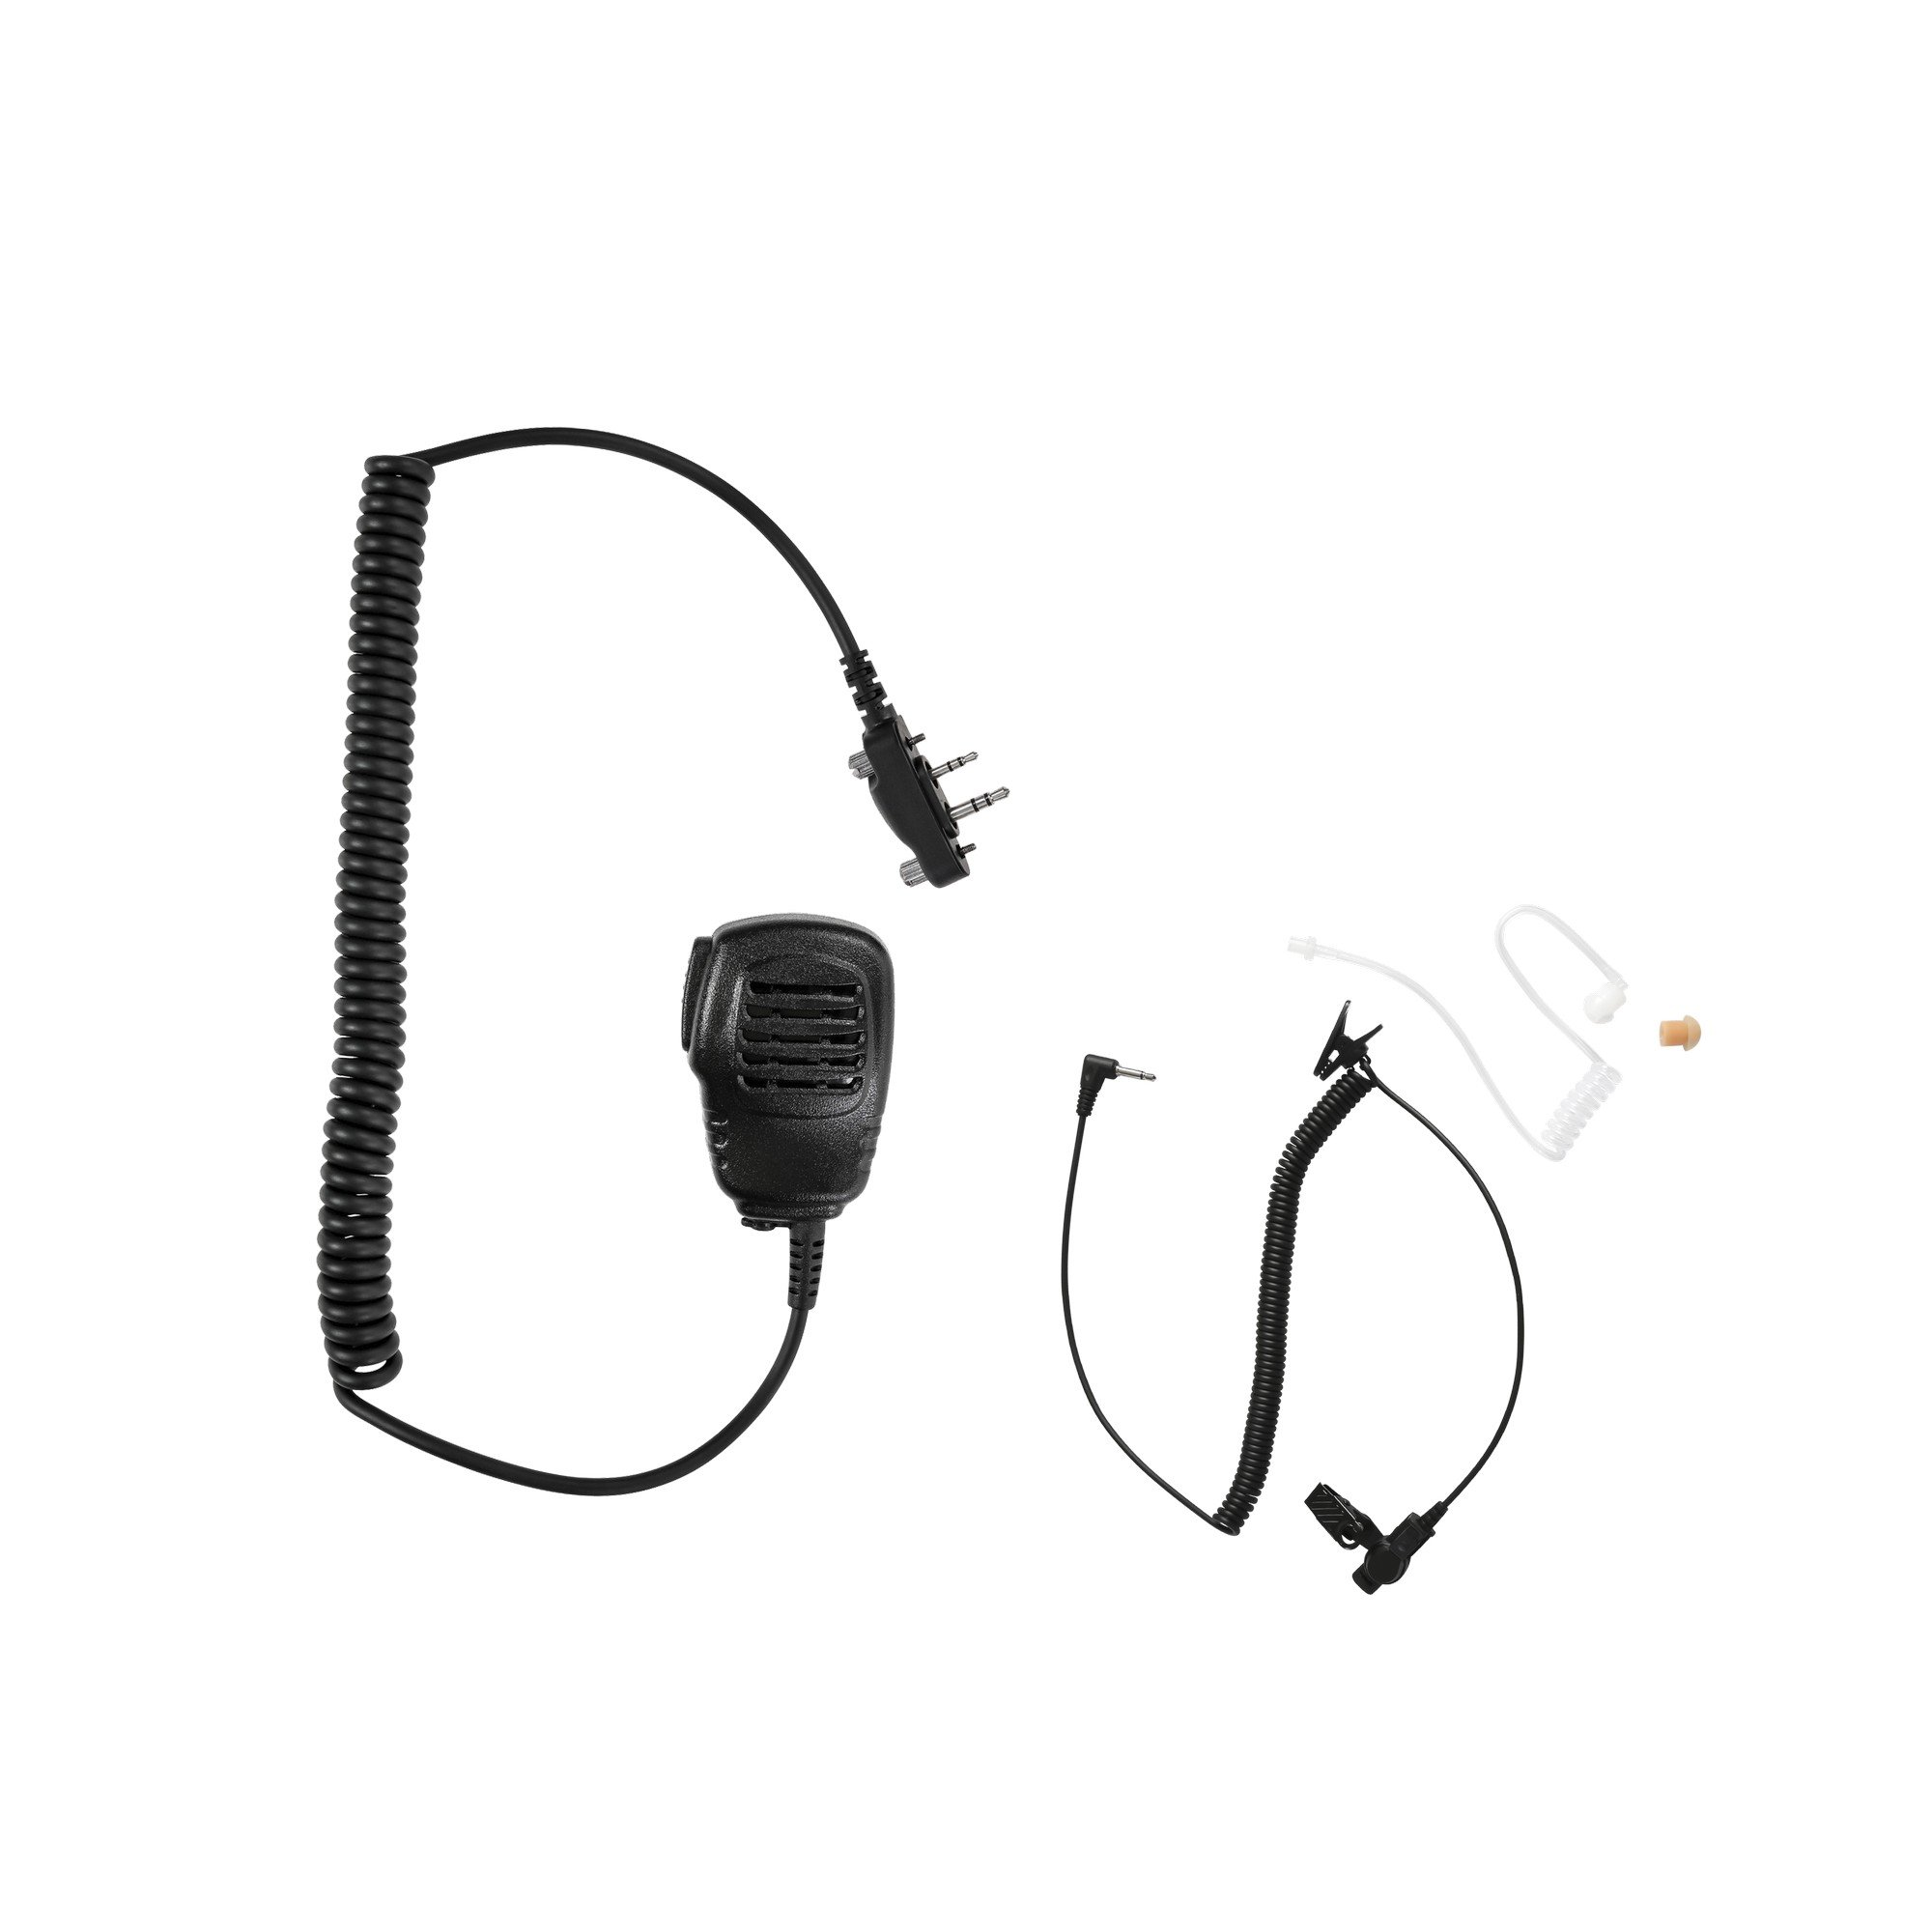 Maxtop APM100ARP35-I2 Light Duty Shoulder Speaker Microphone + Coil Extend Listen Only Earpiece for ICOM